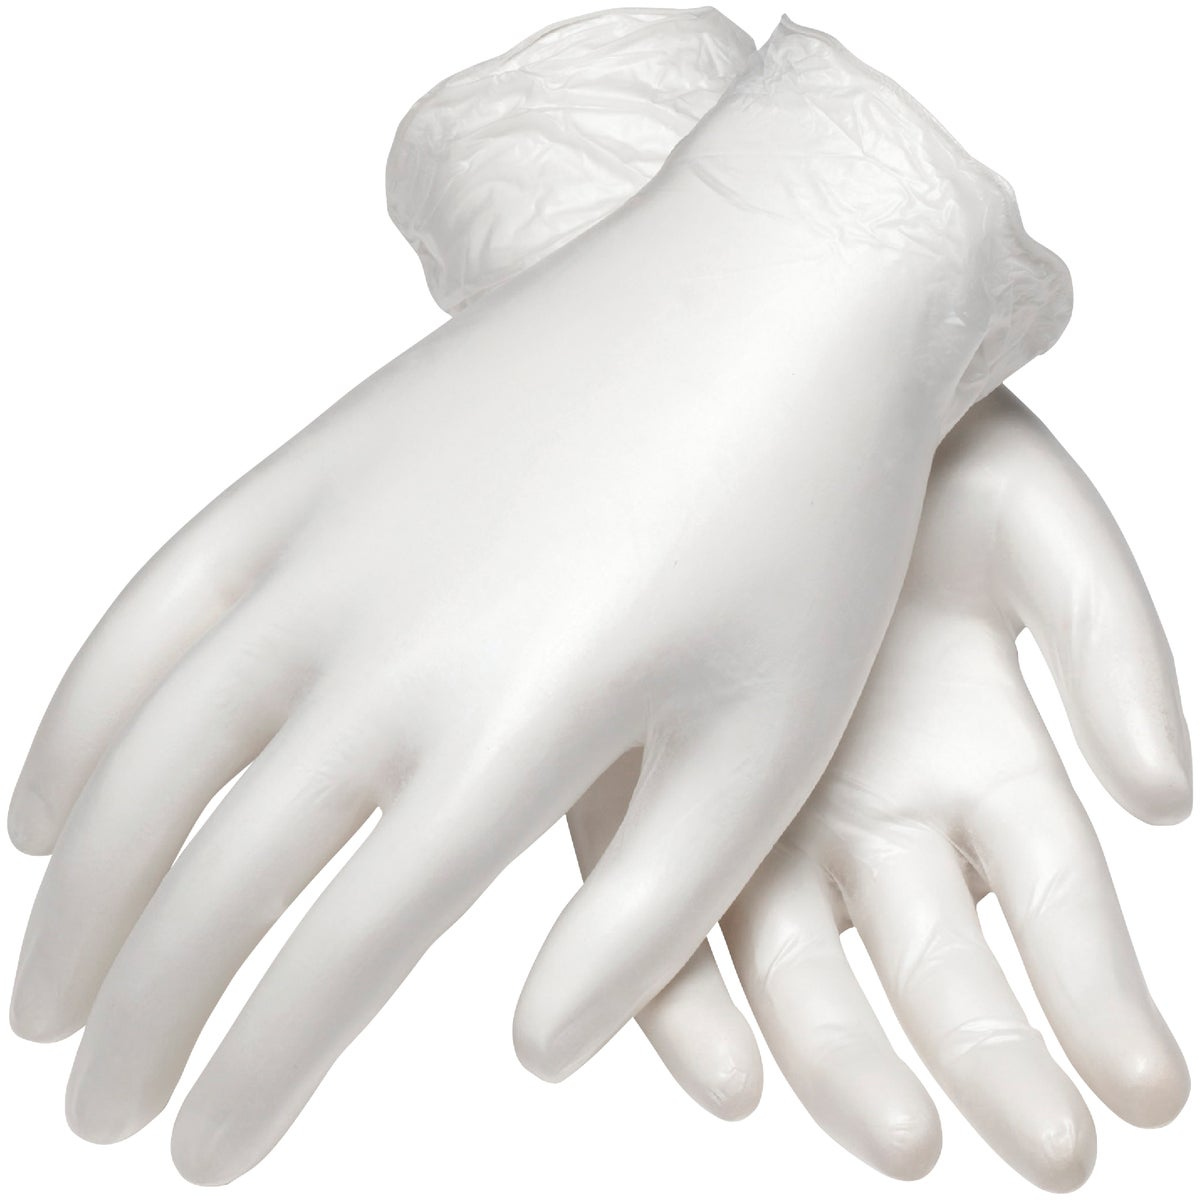 LARGE PF VINYL GLOVES - 2750/L by West Chester Incom